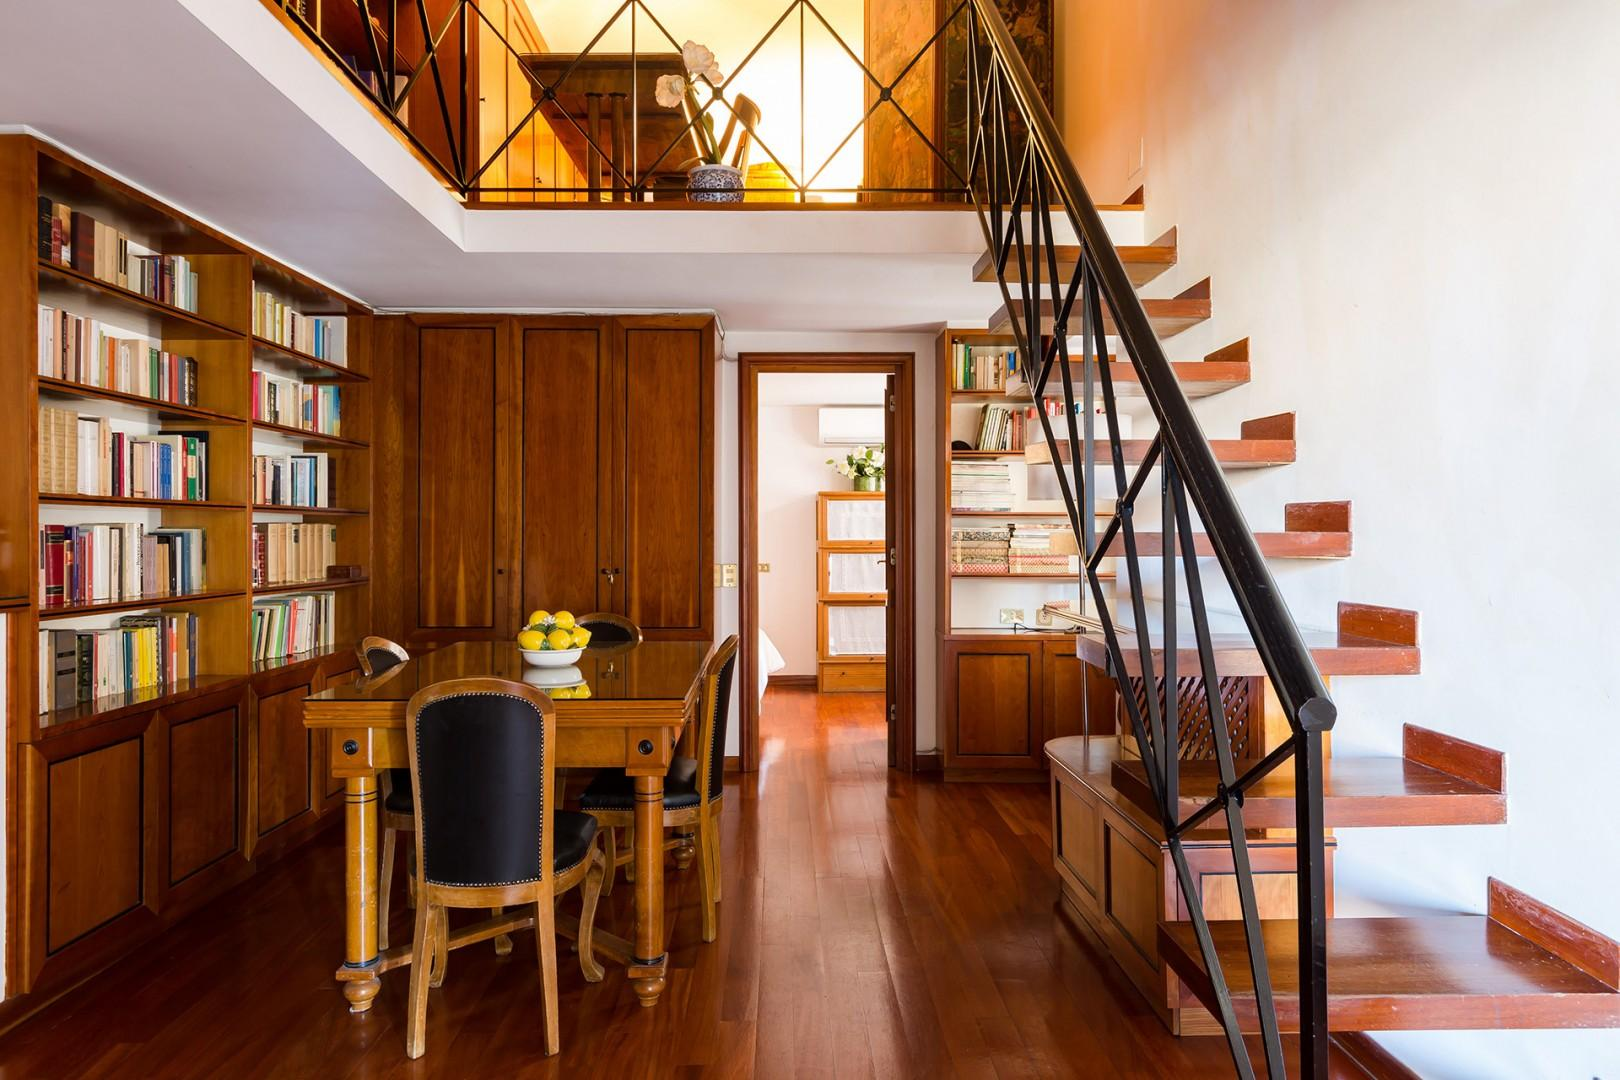 Stairs from the dining room lead to the mezzanine level.